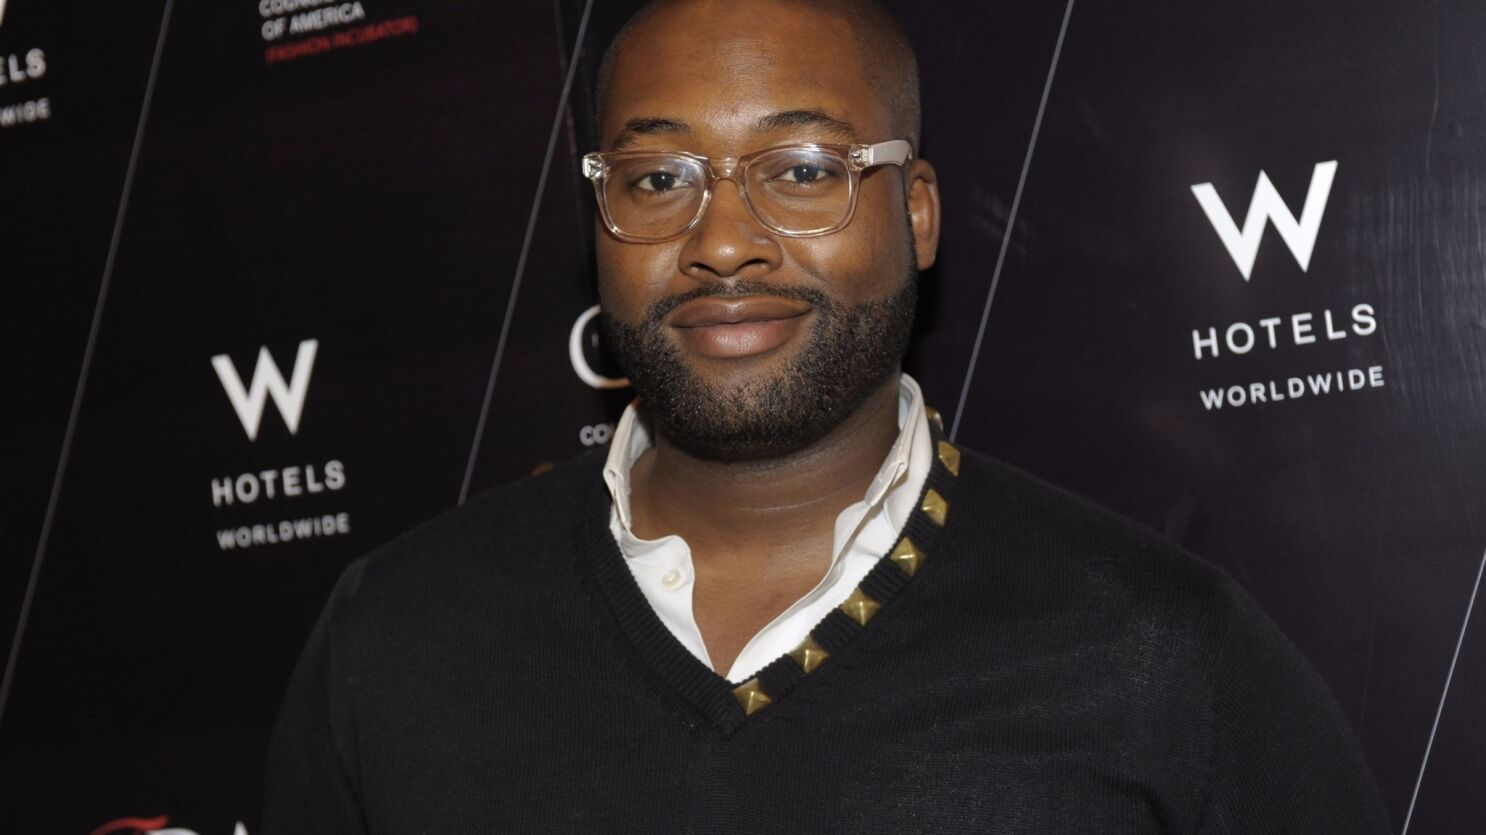 Project Runway Contestant And Fashion Designer Mychael Knight Dies Los Angeles Times